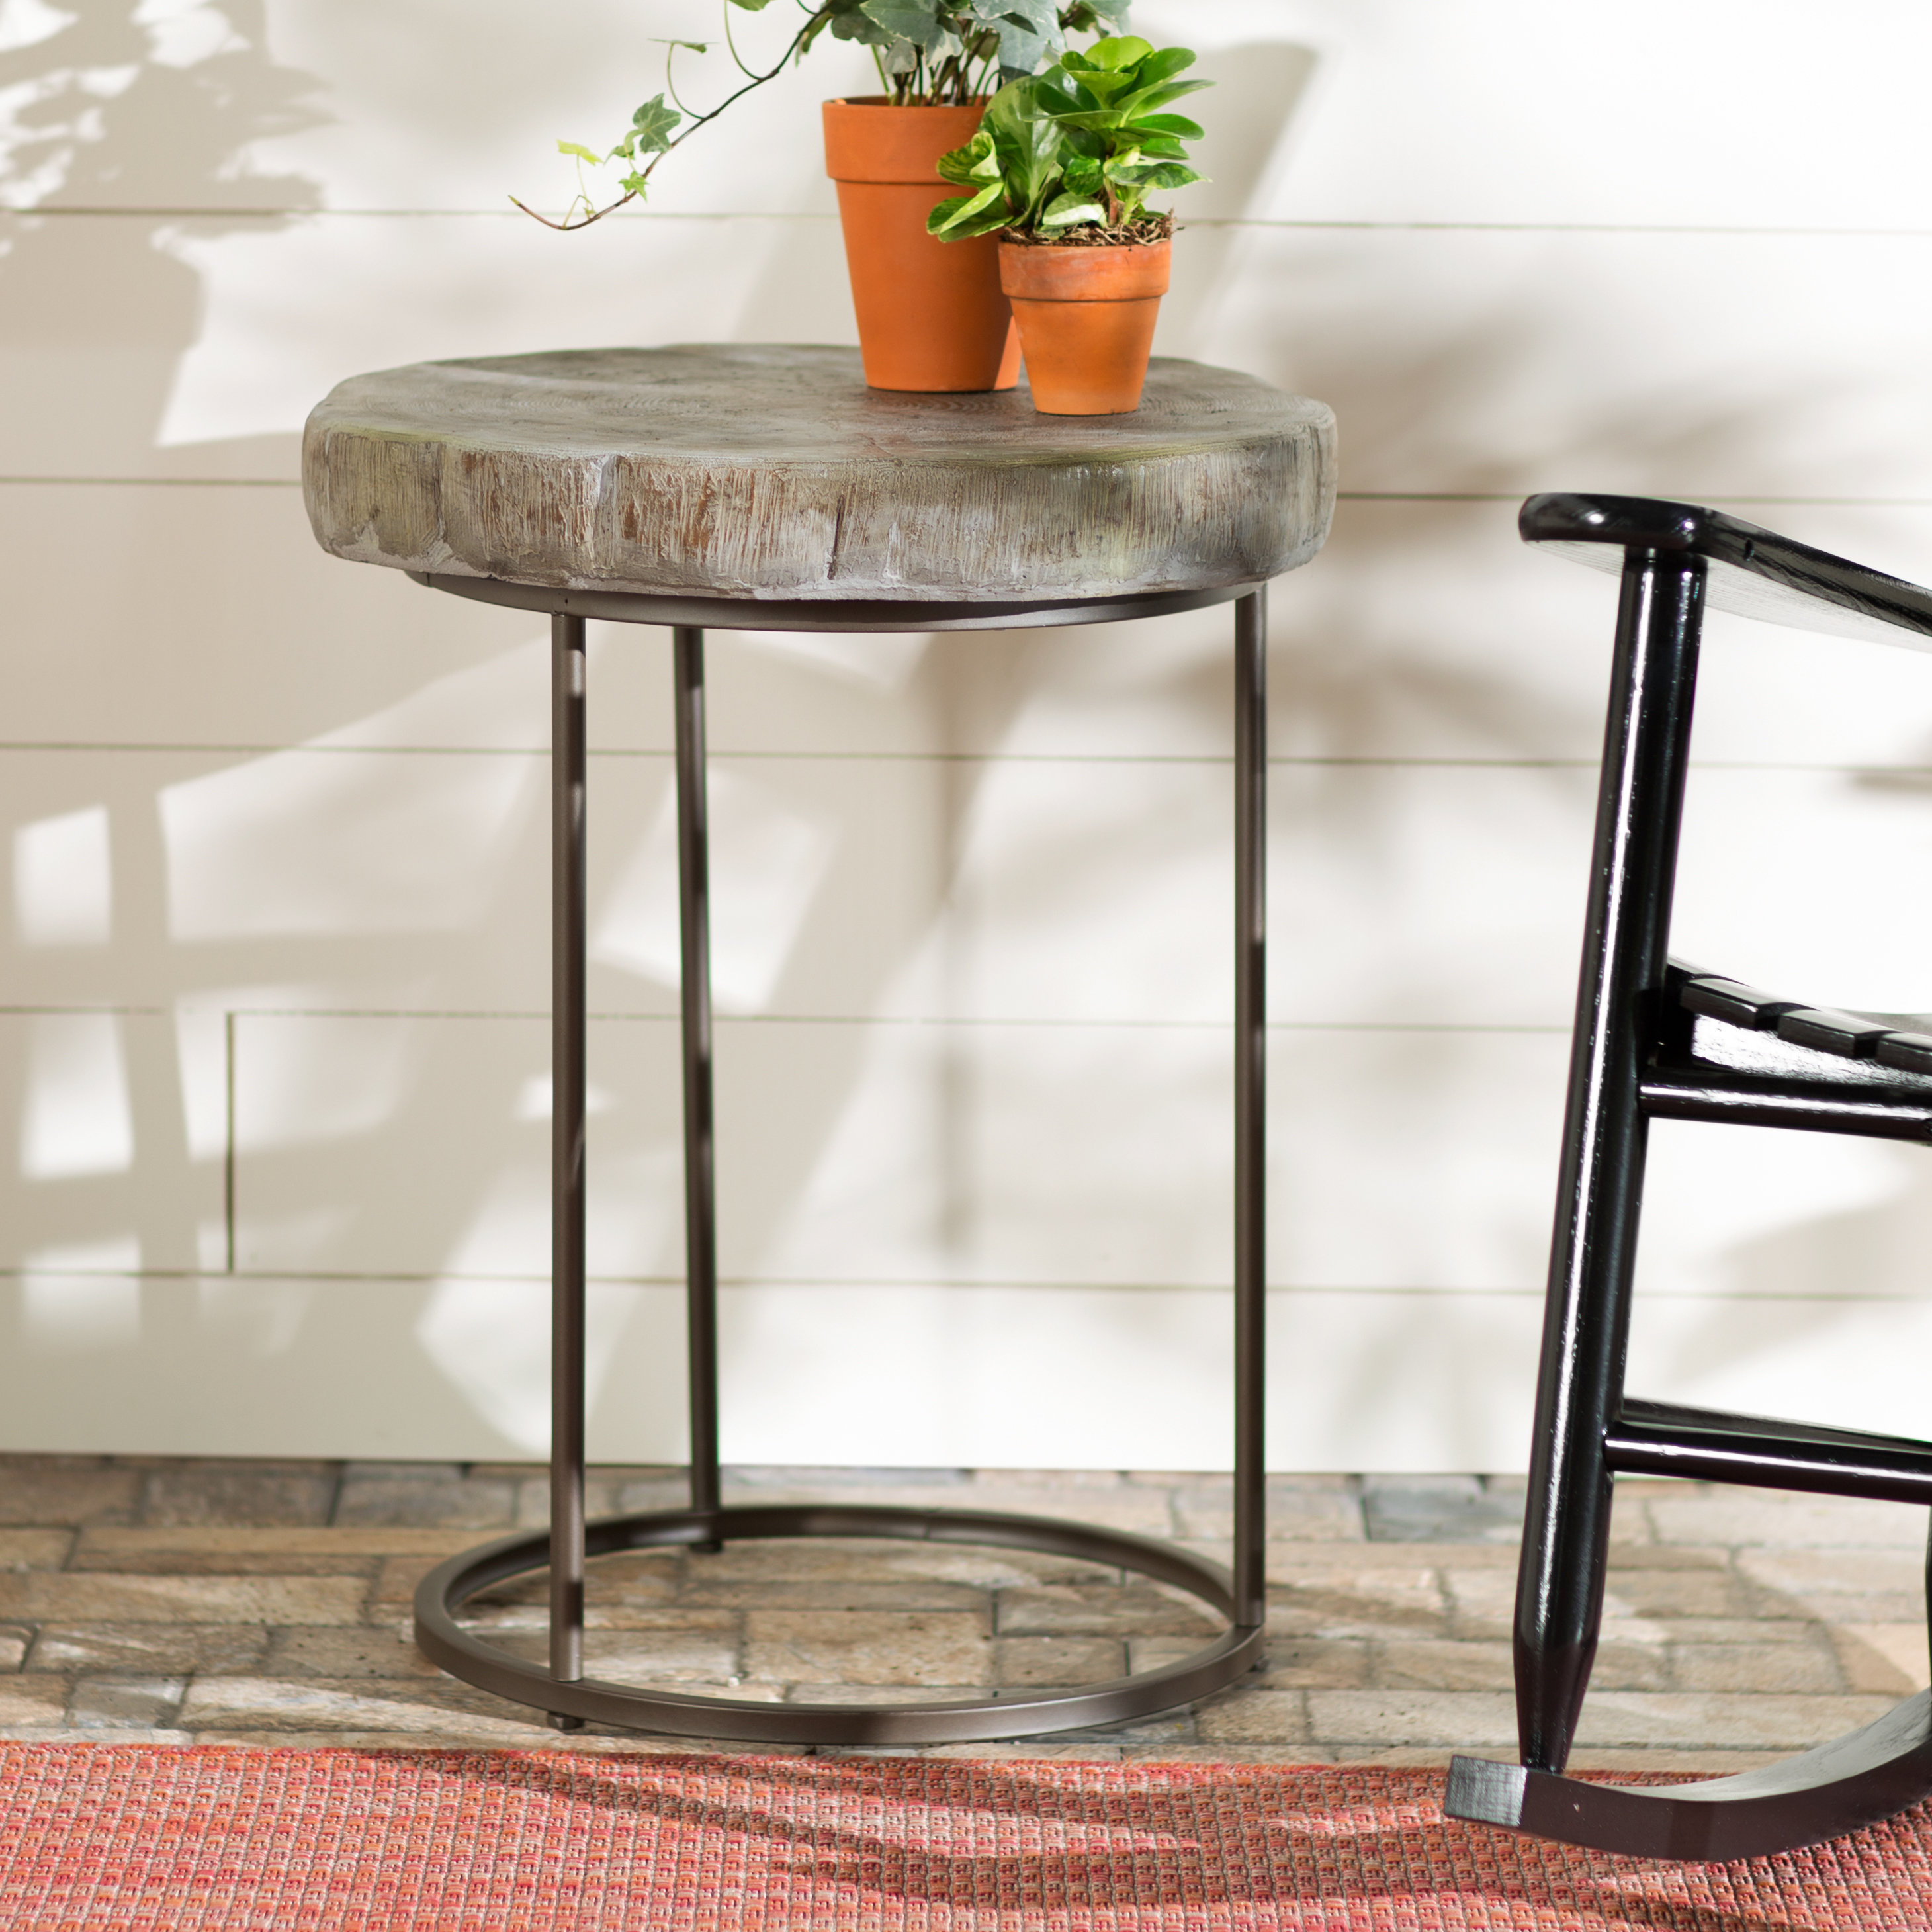 gracie oaks timblin side table reviews bombay outdoors pineapple umbrella accent ikea outdoor shelf glass top entry wood pedestal end clear plastic bar height round dining setting